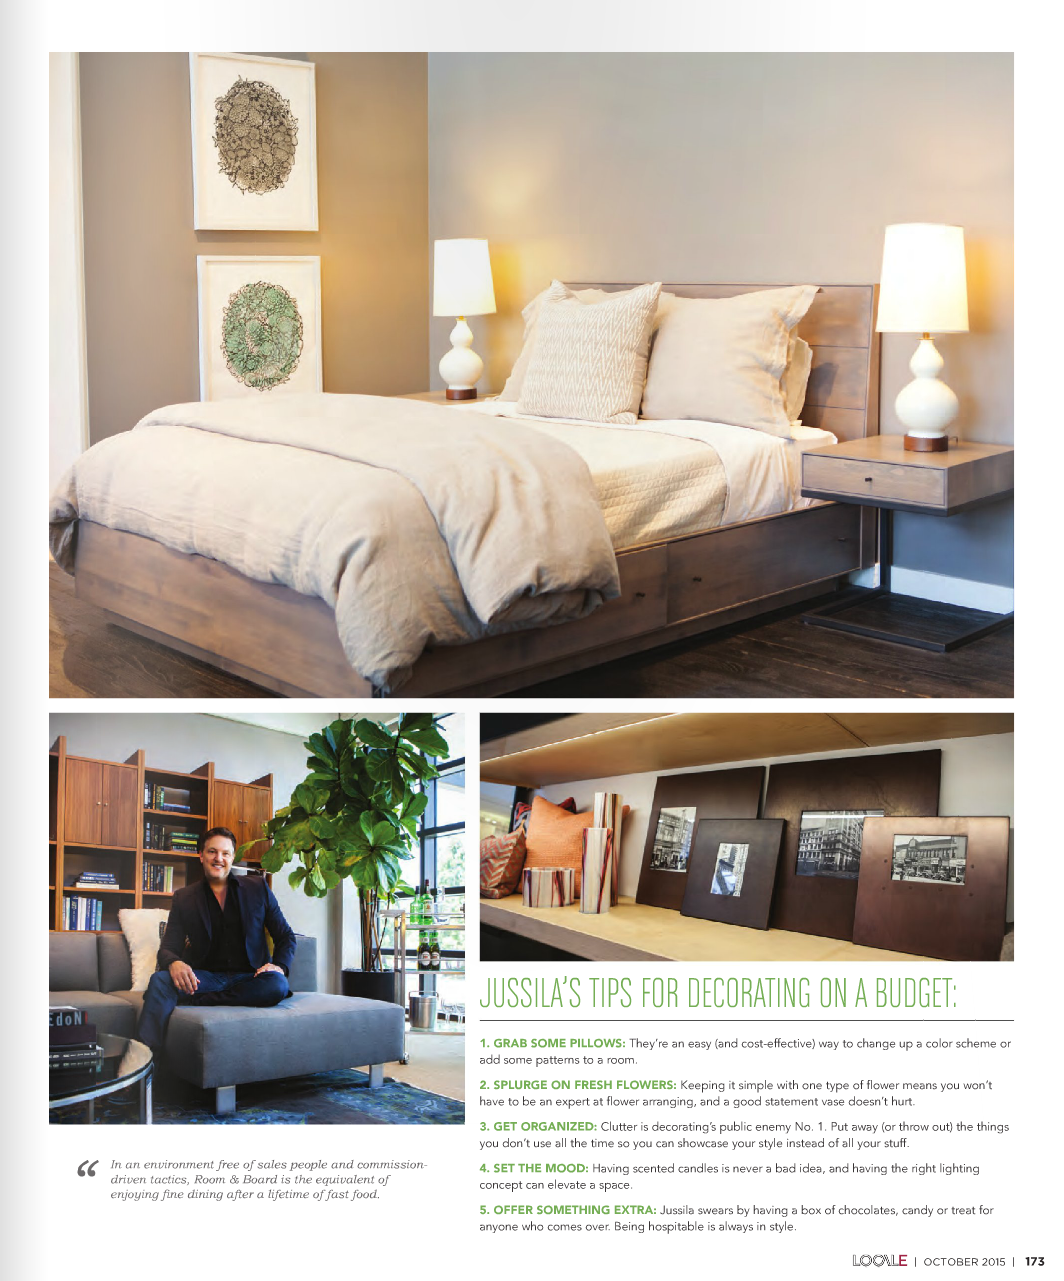 Read more about our Retail Market Manager Scott Jussila's  tips for decorating on a budget in Locale's October issue!